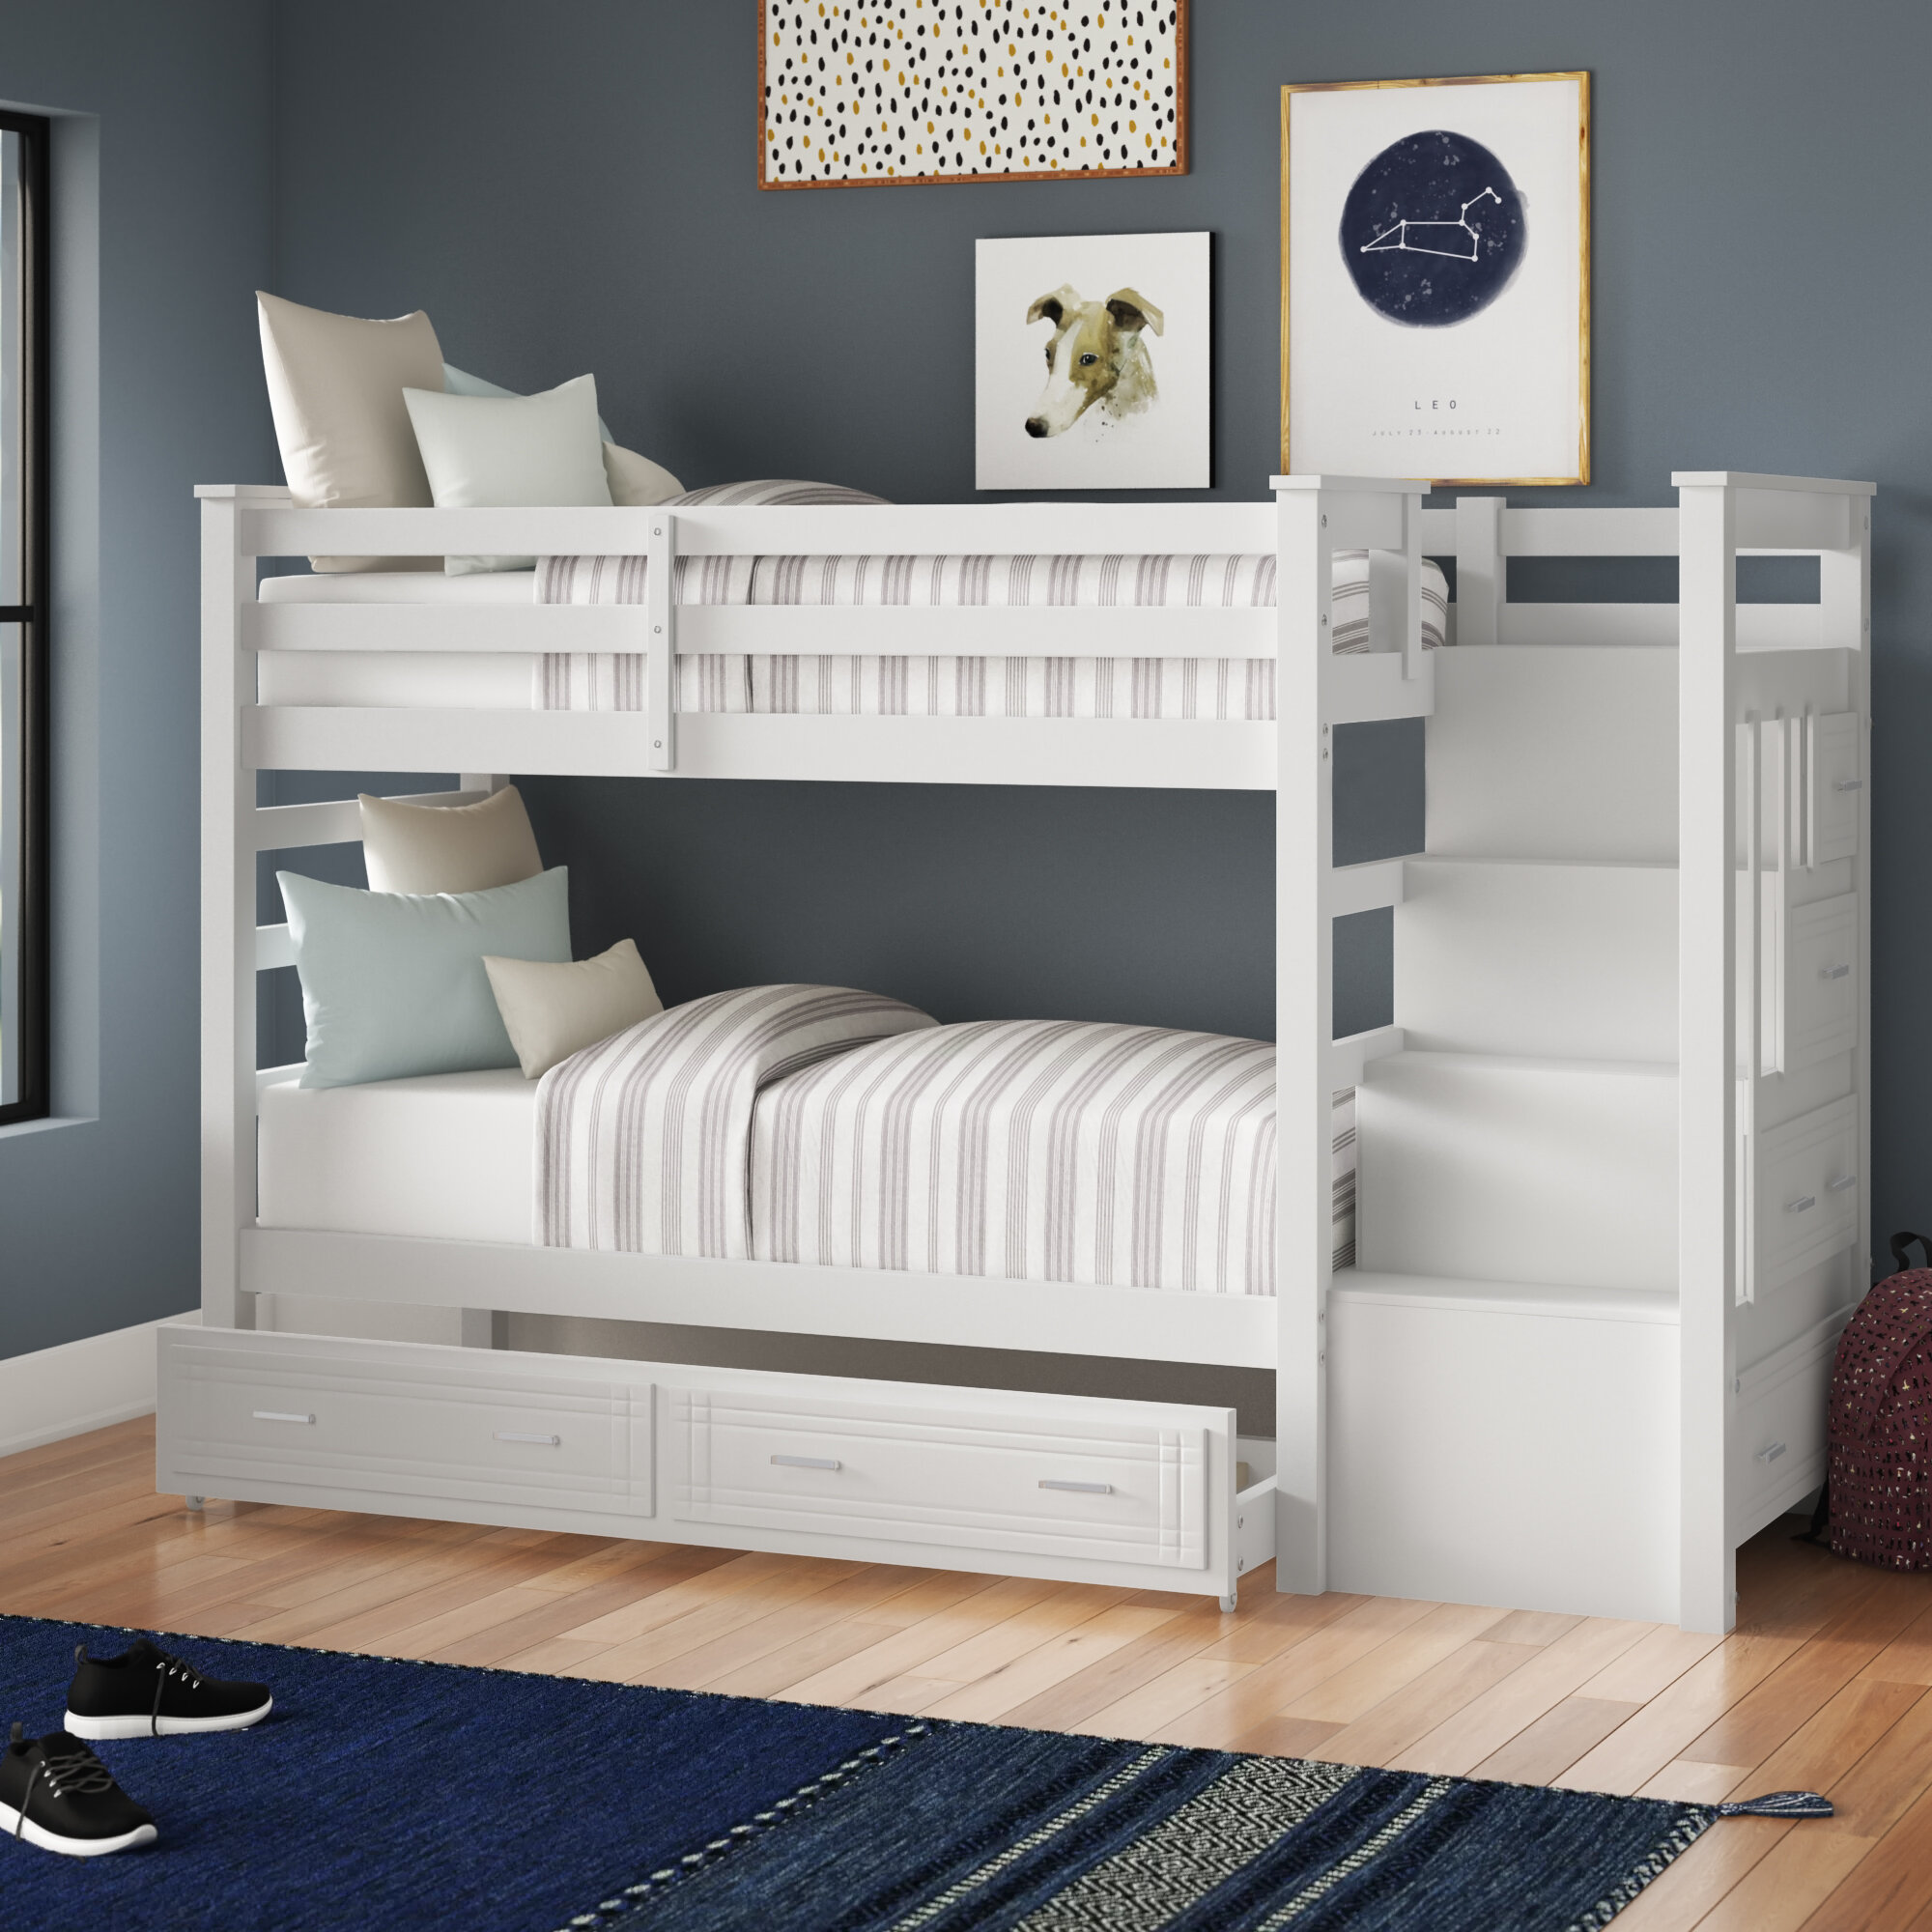 Harriet Bee Leyburn Twin Over Twin Bunk Bed With Trundle And Drawers Reviews Wayfair